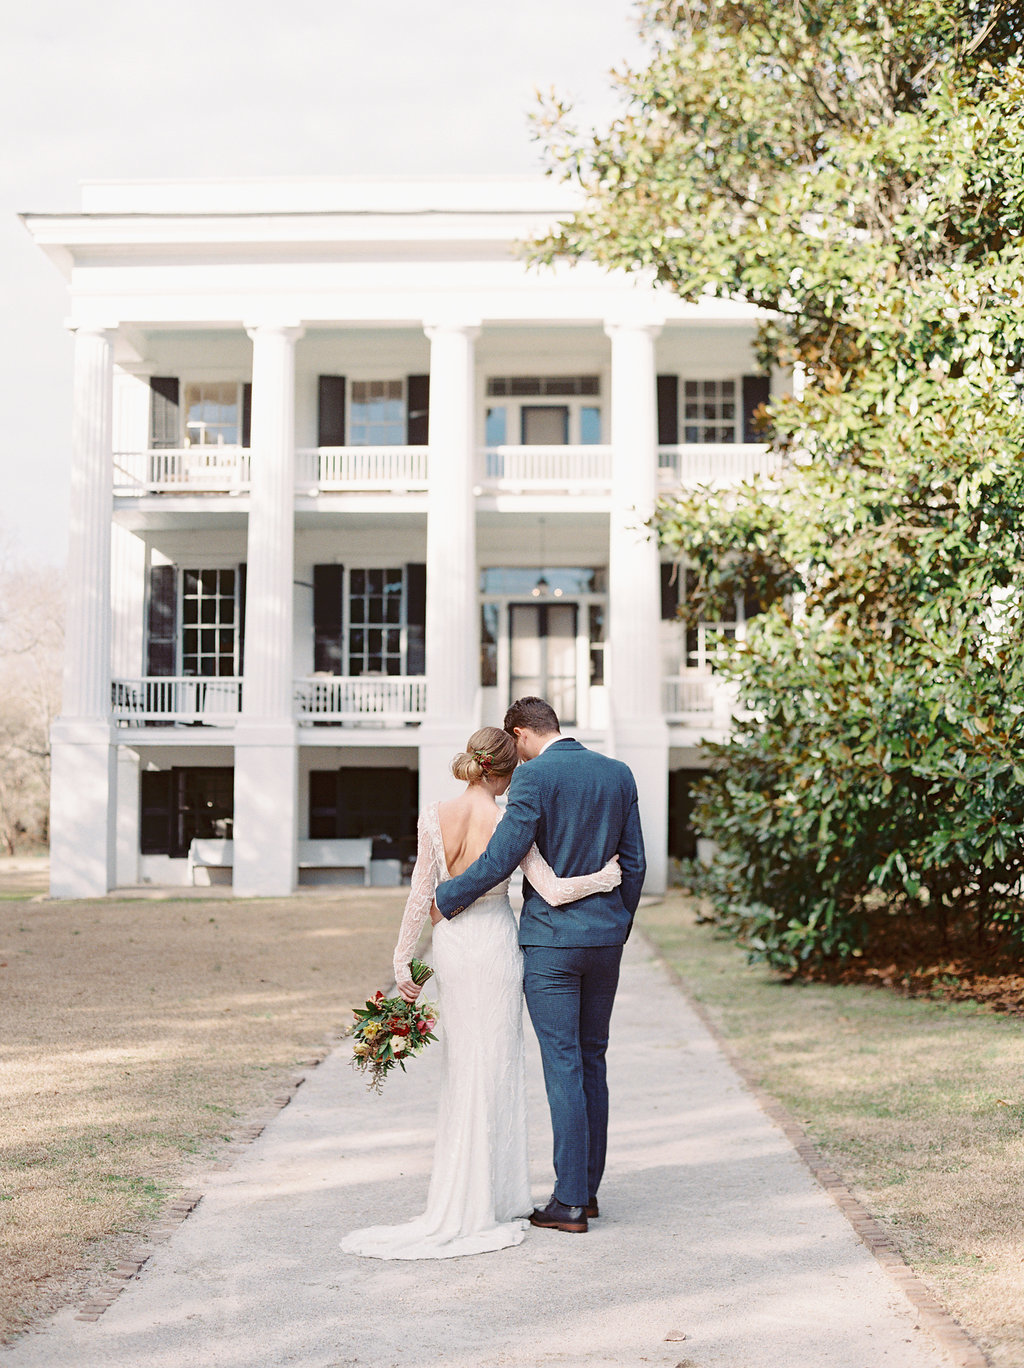 wavering-place-south-carolina-wedding-event-planner-jessica-rourke-384